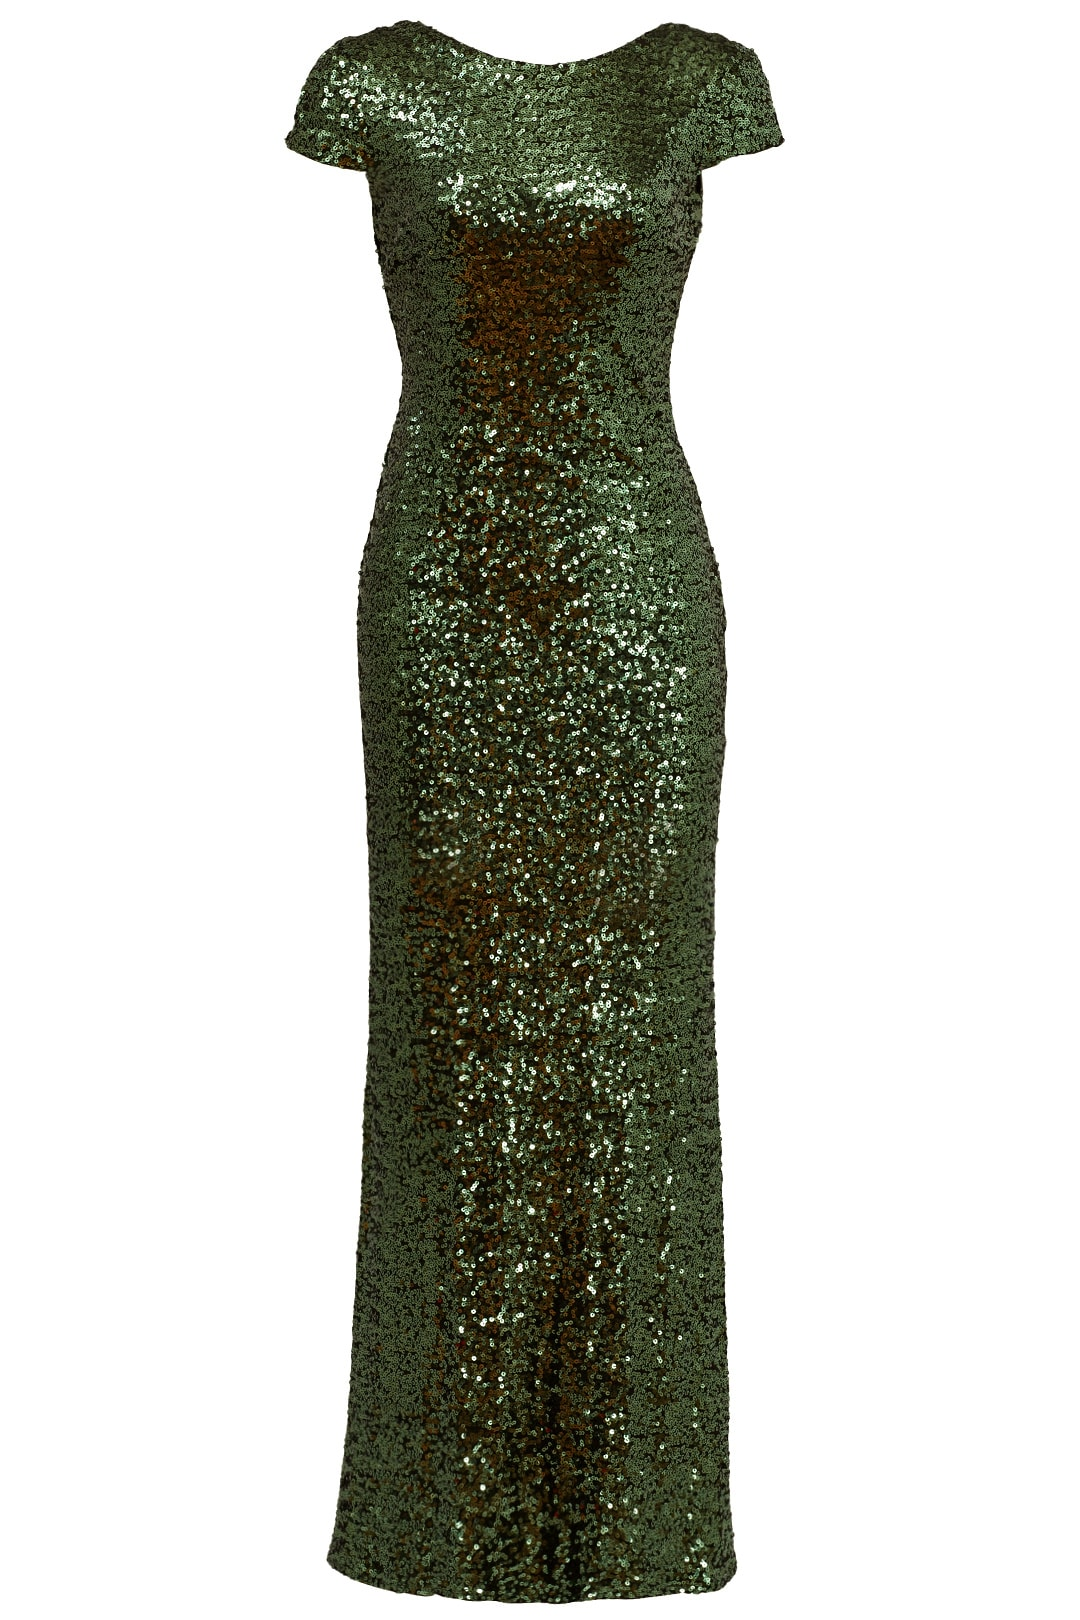 Green sparkly formal dress